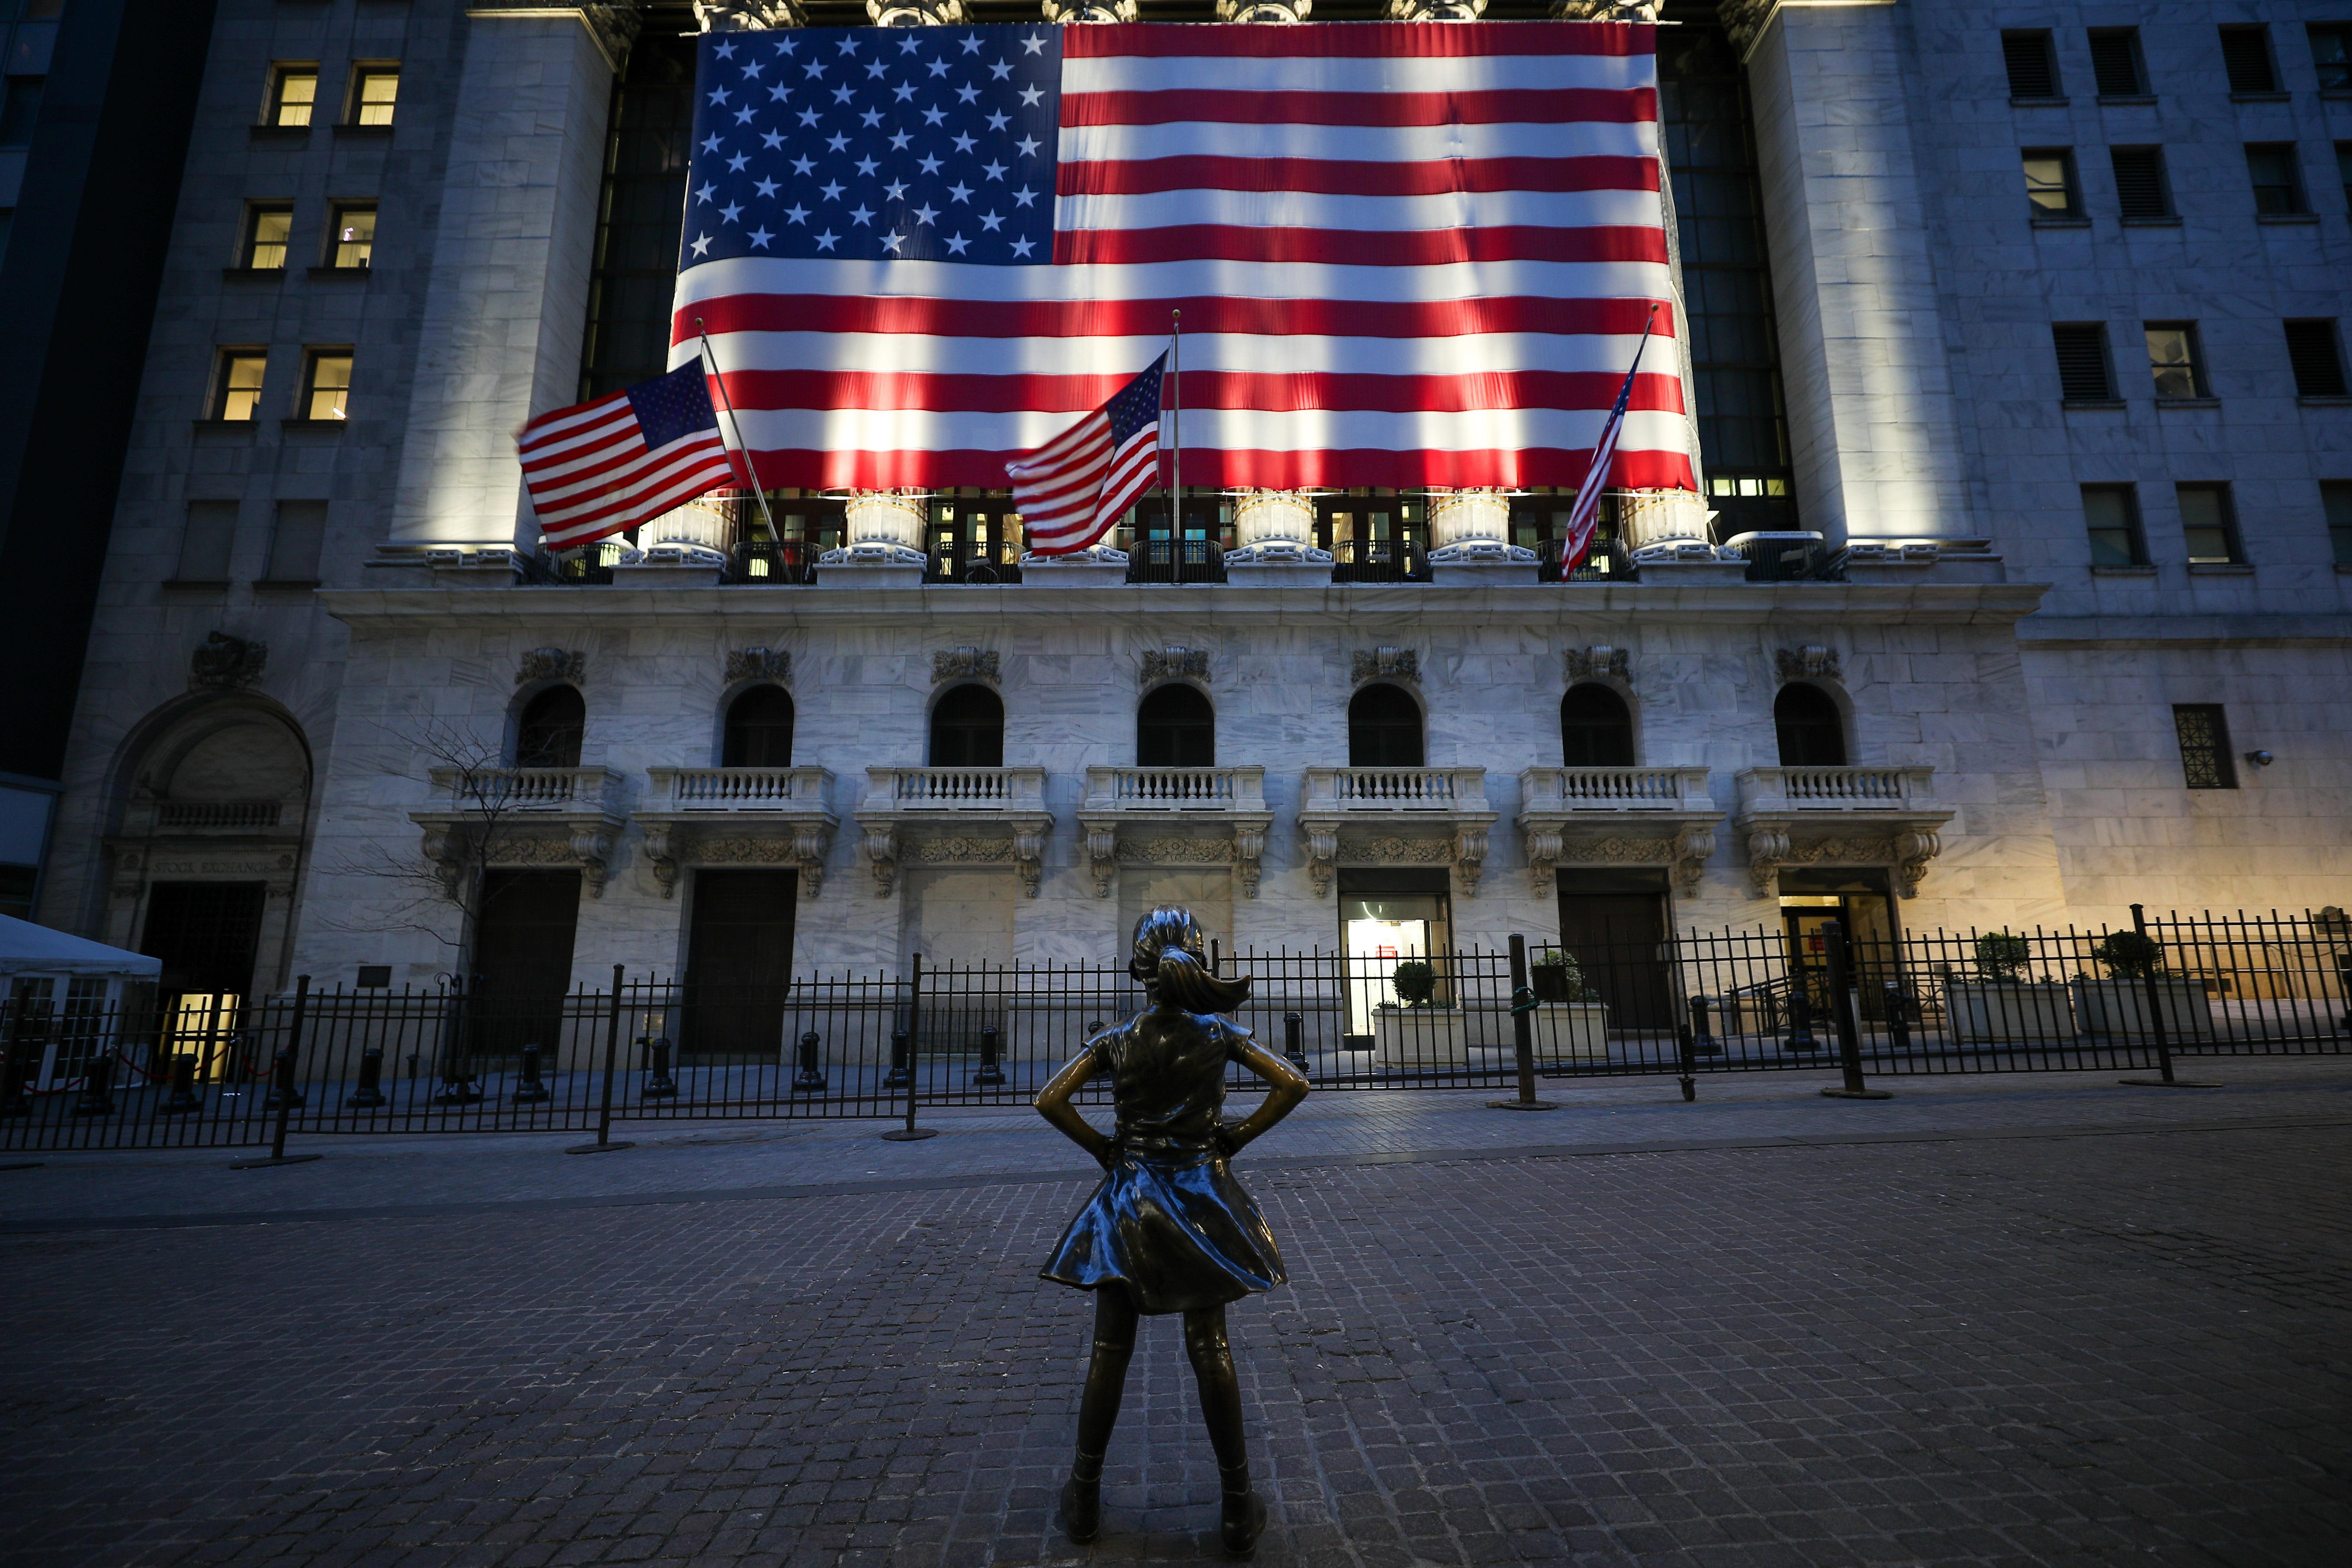 Stock futures slip after mega-rally carries Dow to best day since 1933